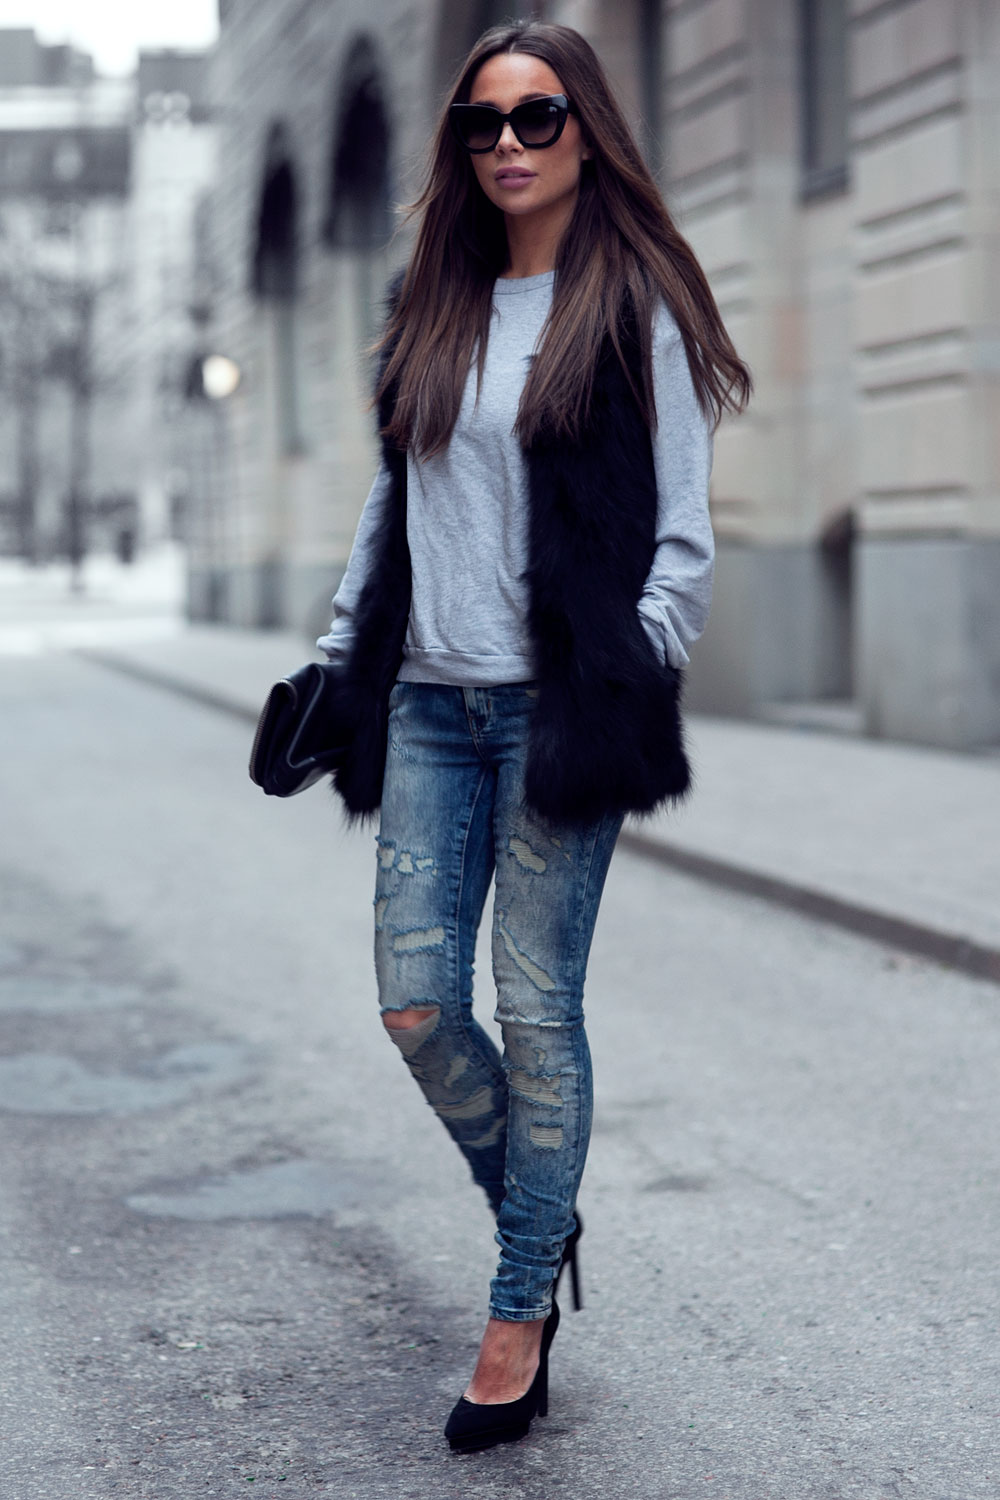 Johanna Olsson is wearing the faux fur vest trend